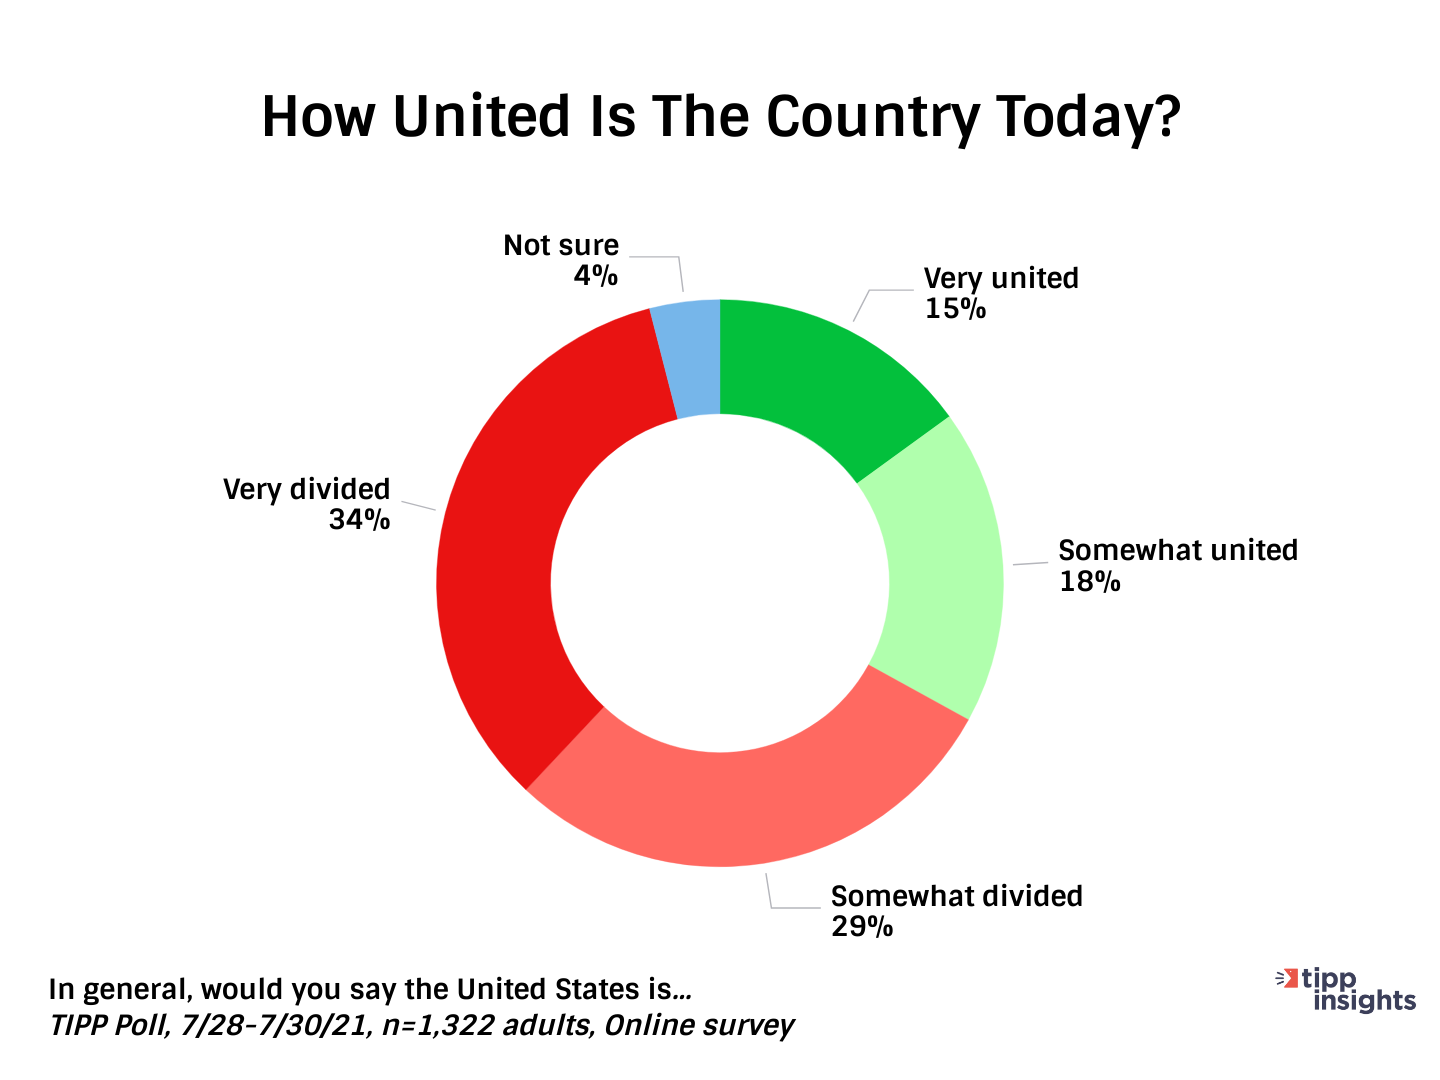 TIPP Poll Results: Asking How united is the country (United states) today?  Pie Chart